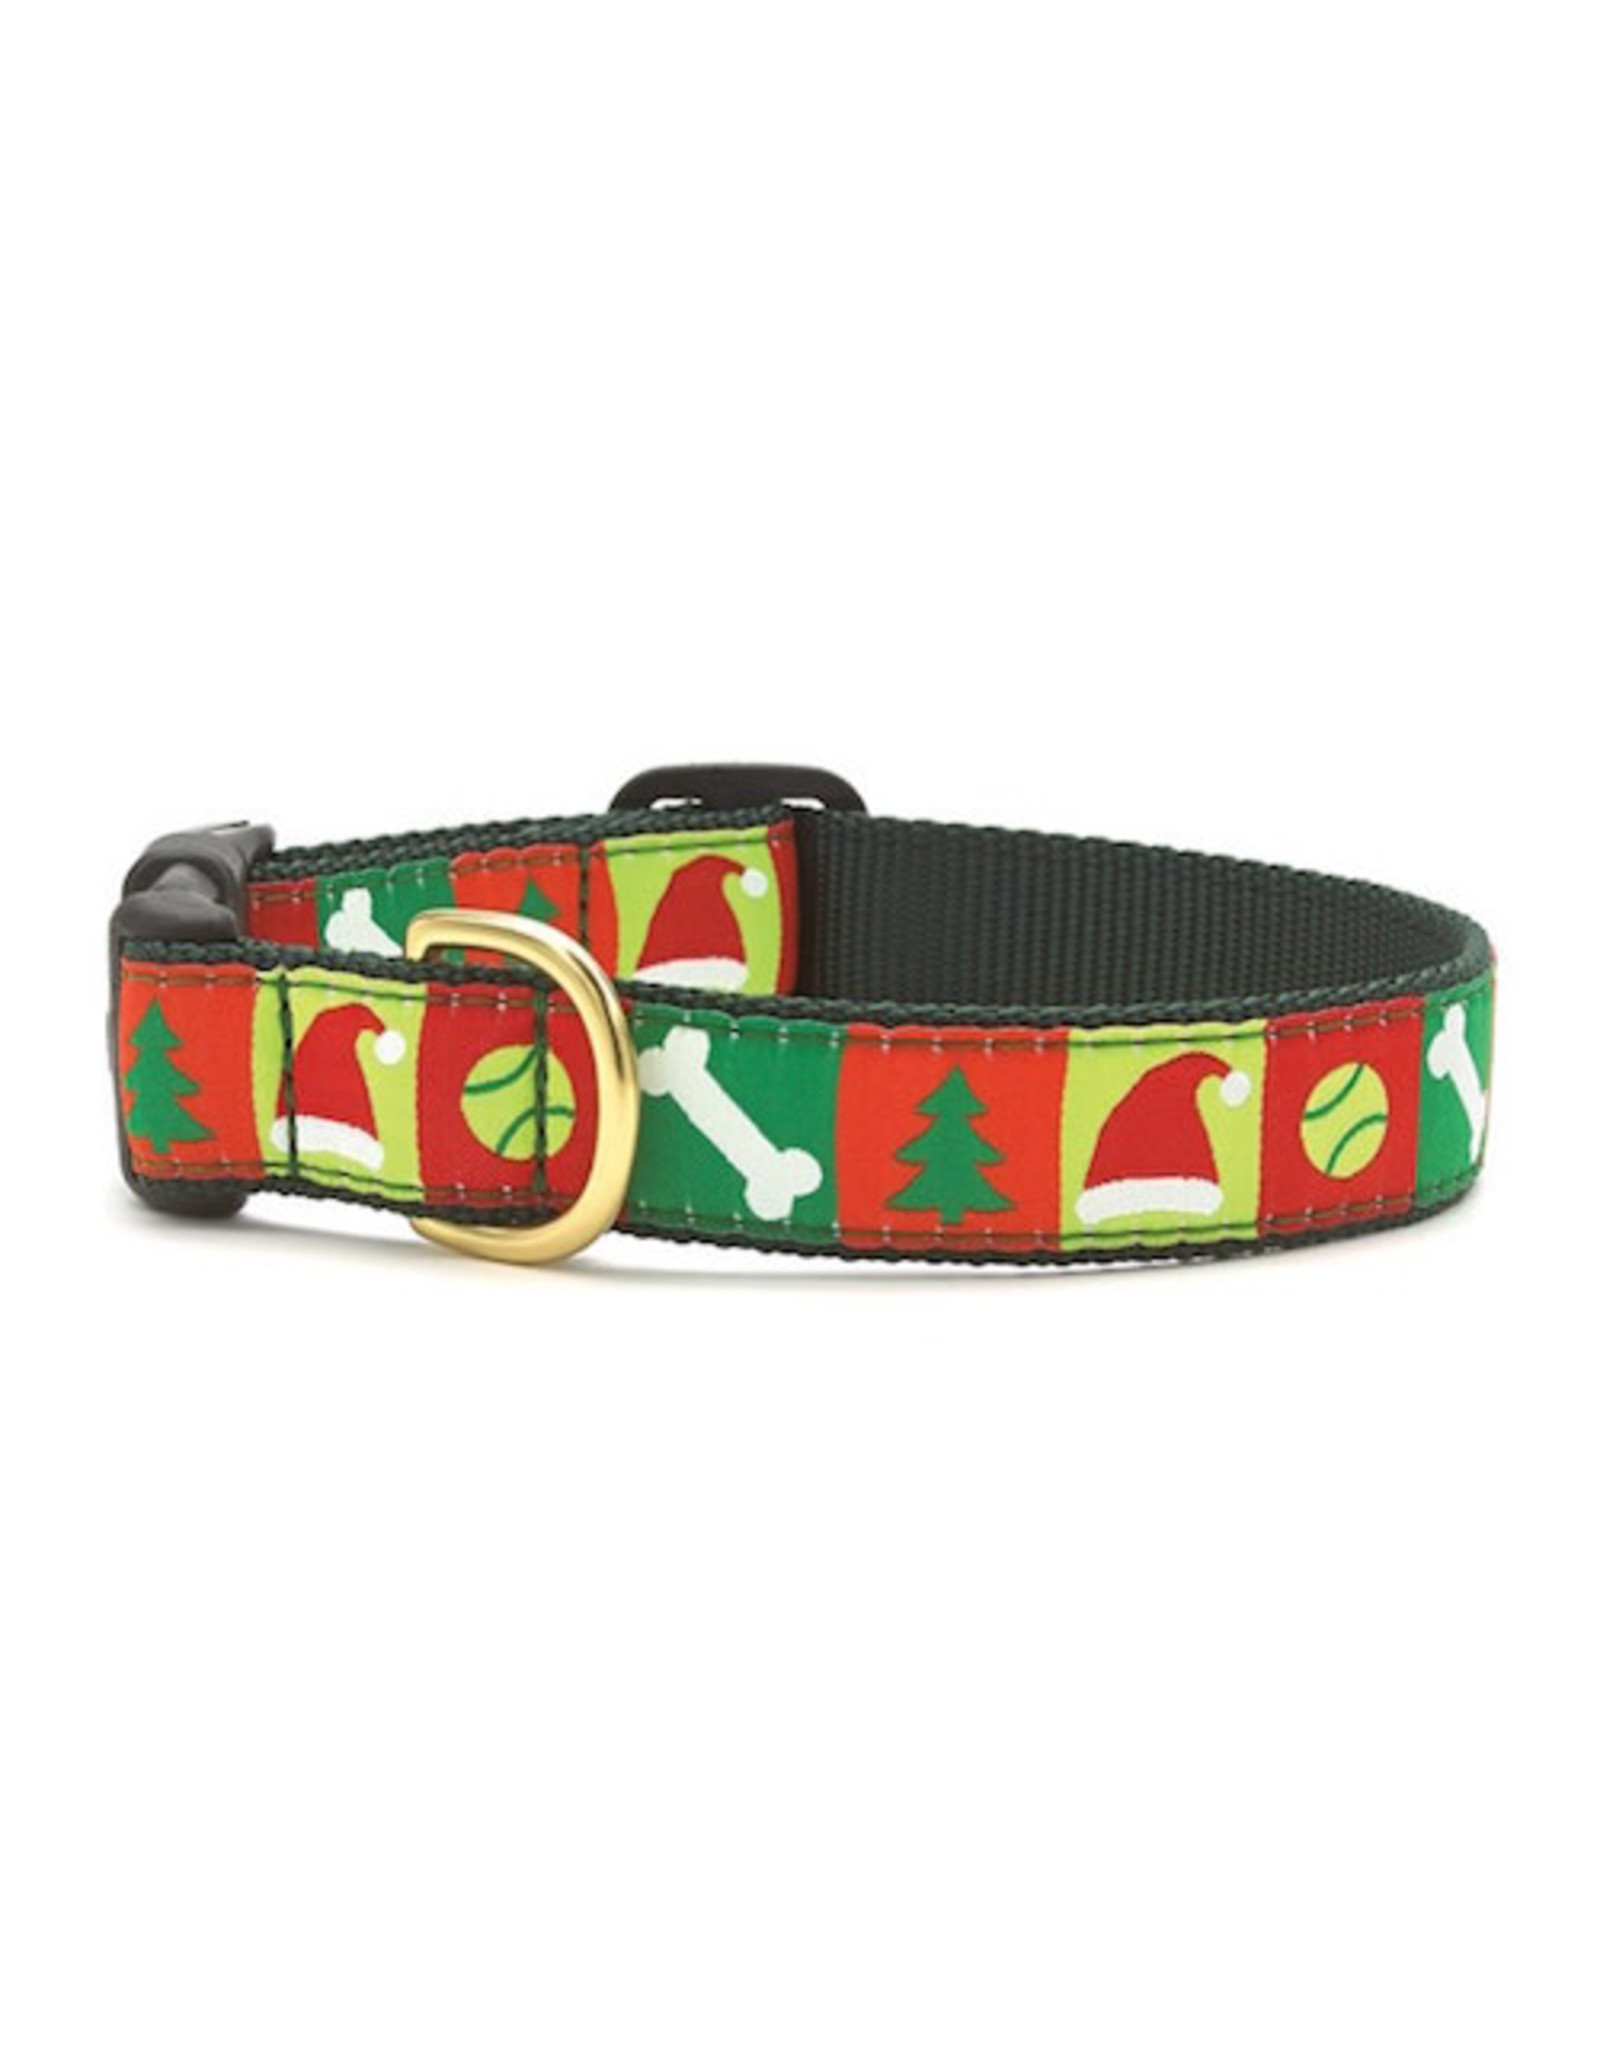 Up Country Christmas List Collar: Wide, M